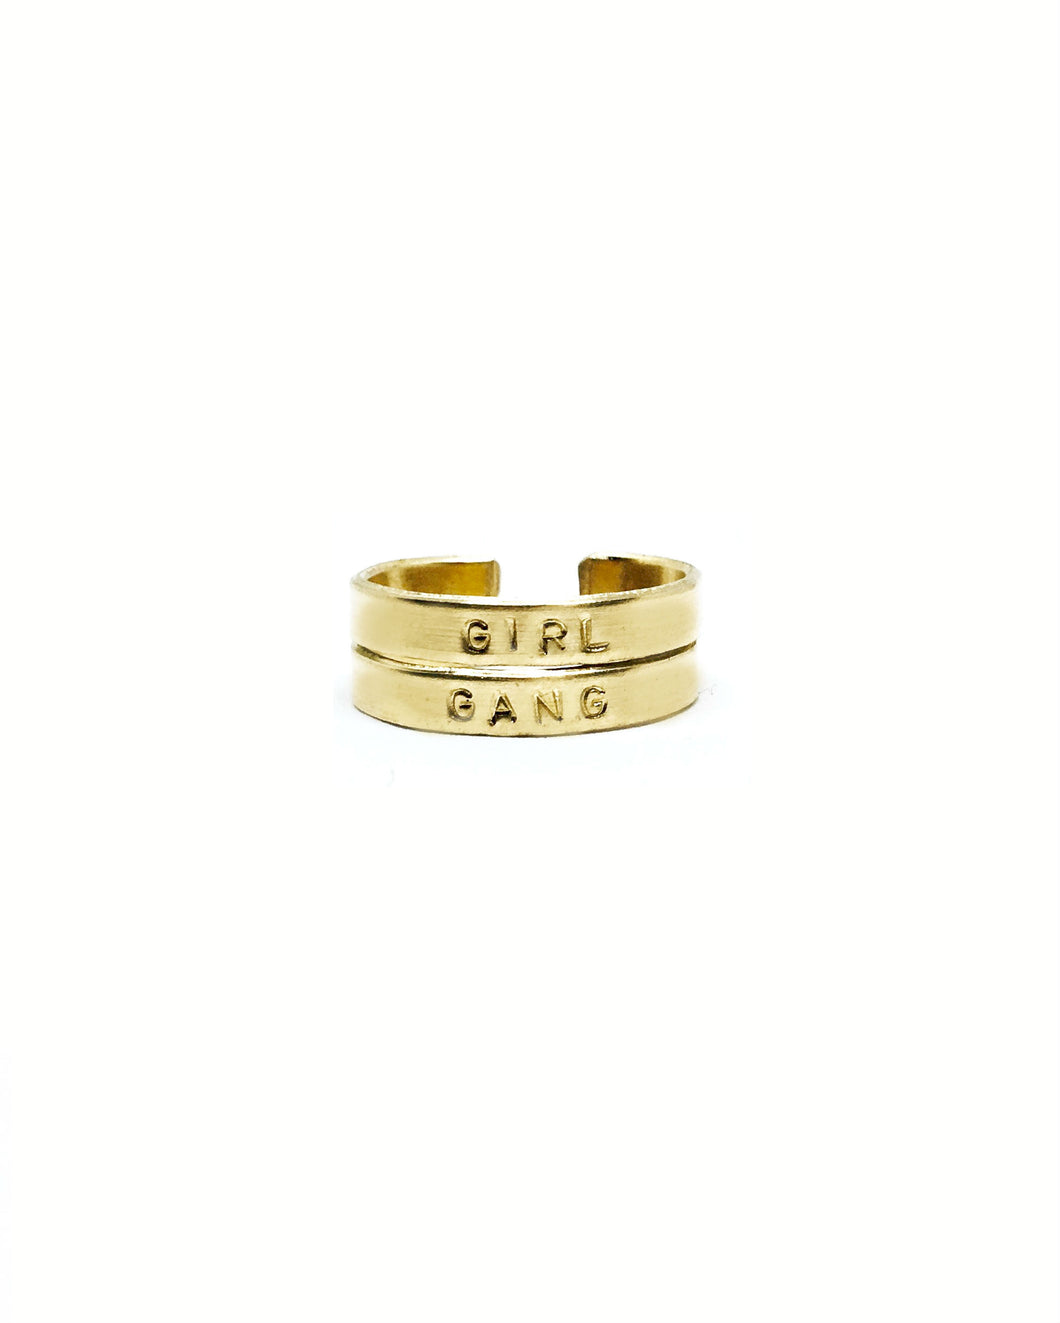 Girl Gang Handstamped Rings